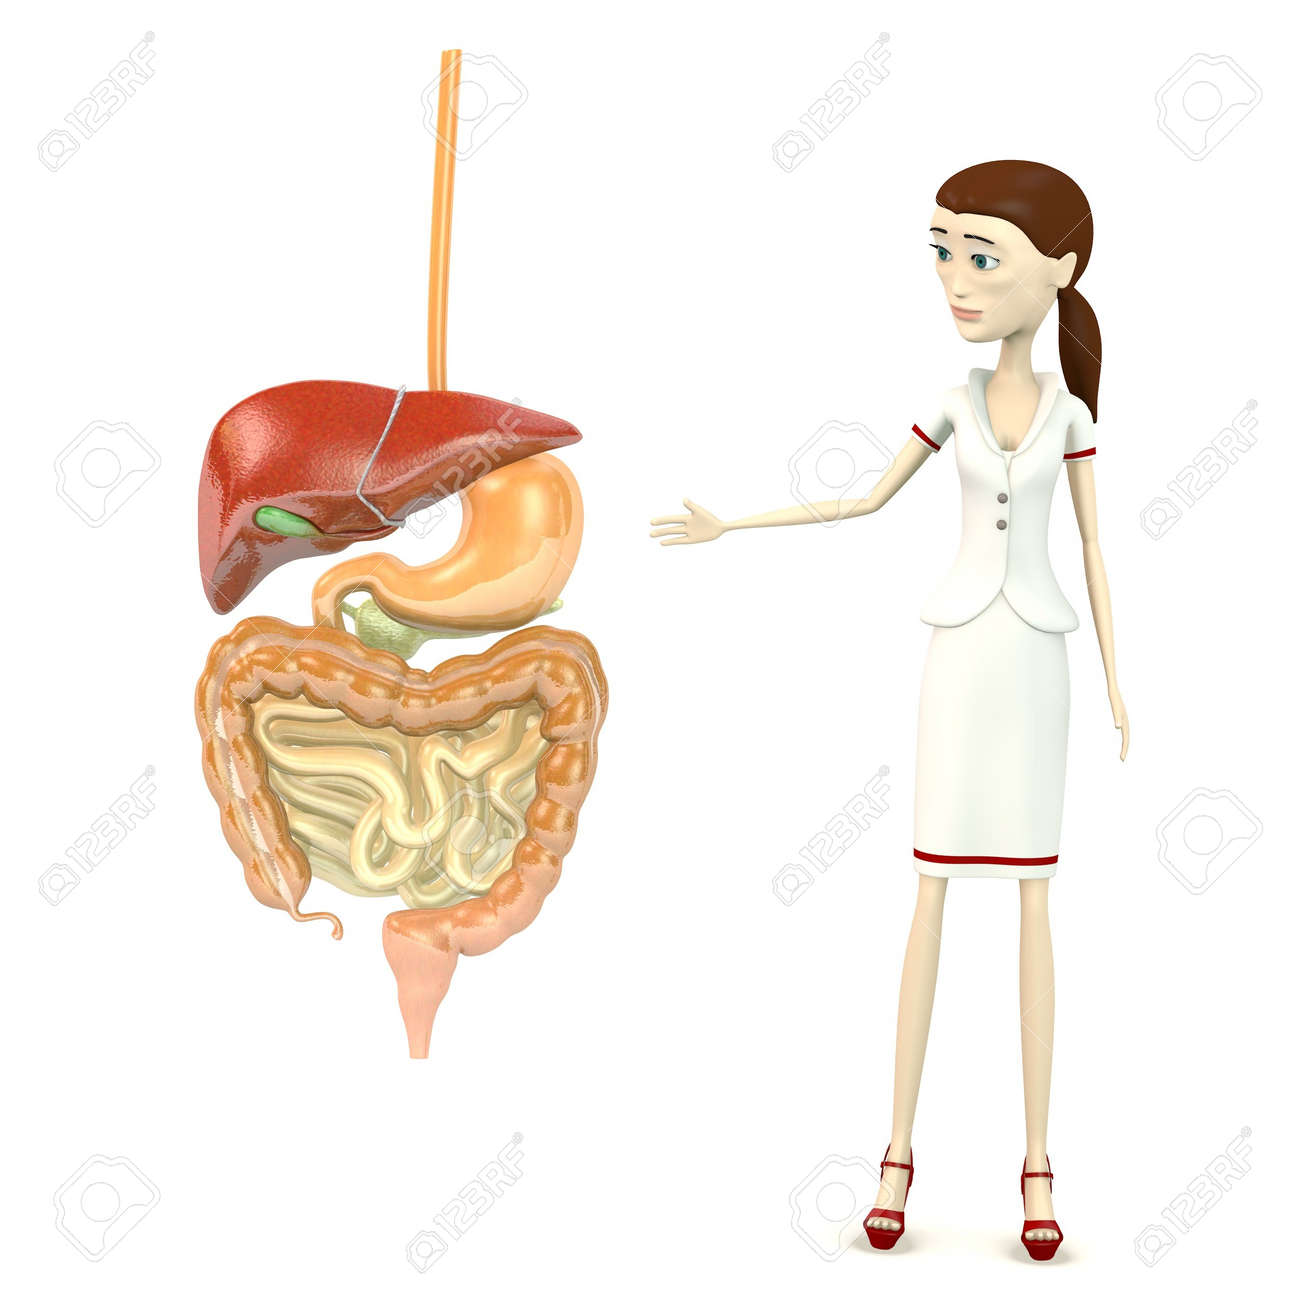 3d render of cartoon character with digestive system Stock Photo - 18949449